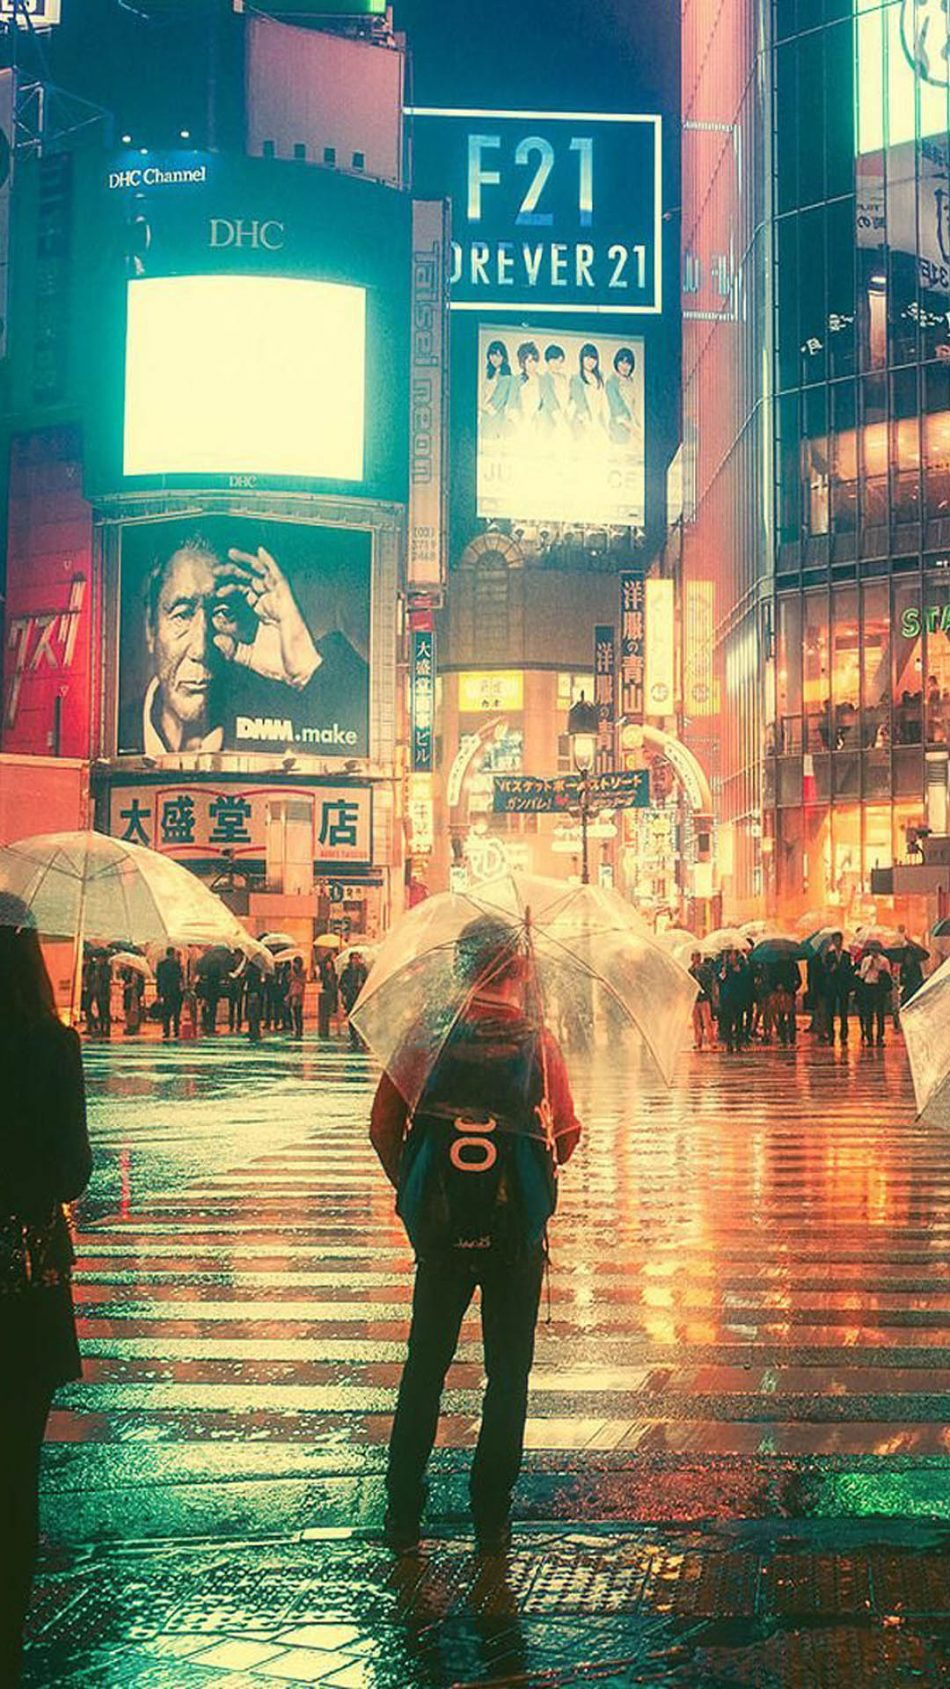 Girl Quotes Wallpapers For Mobile Phones Download Rainy Night In Tokyo City Free Pure 4k Ultra Hd